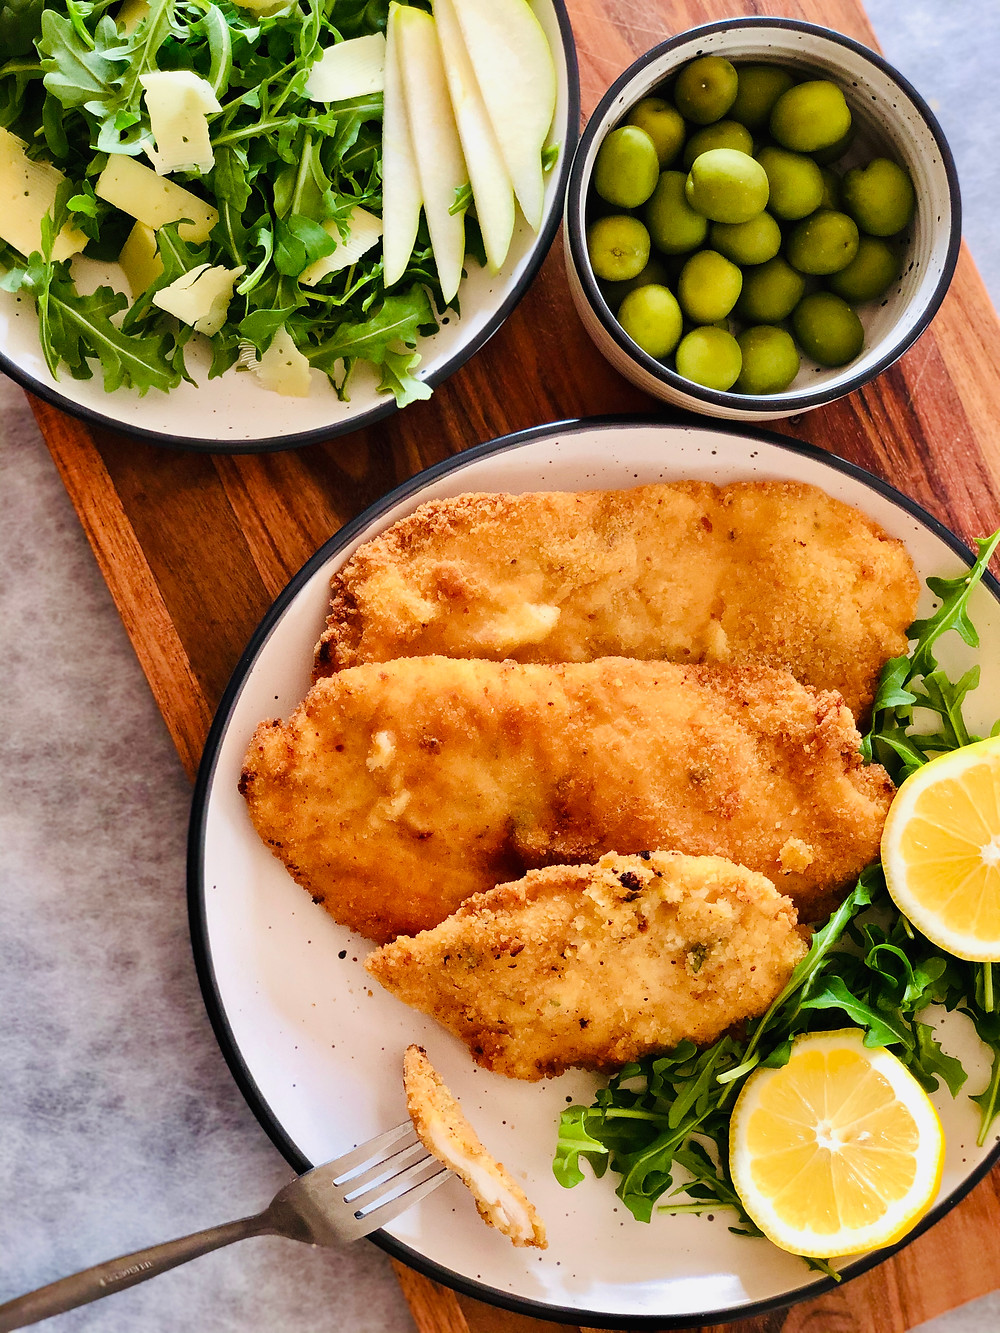 Chicken schnitzel on a plate with lemon, olives, and a small salad